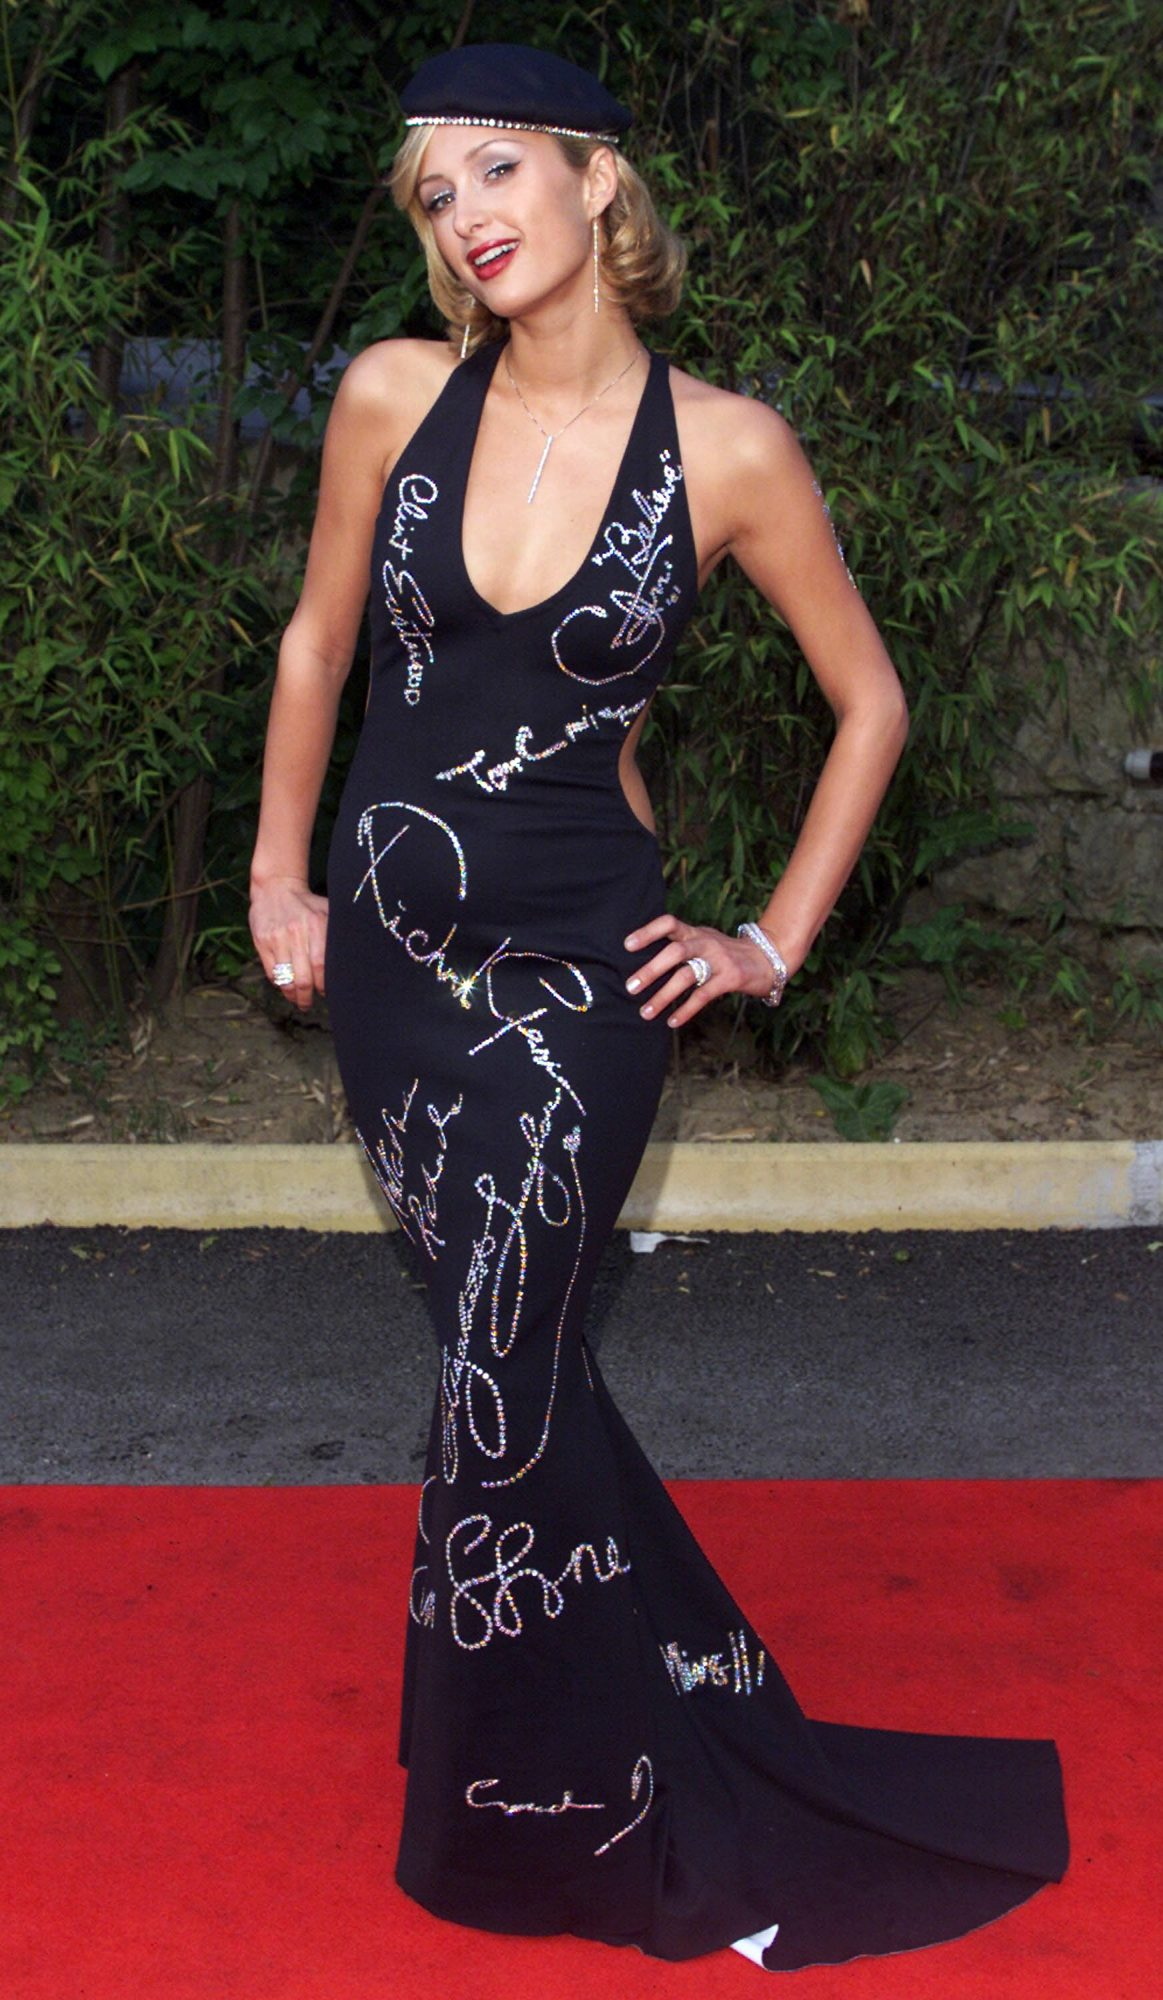 Paris Hilton at 2001 AMFAR Dinner in Cannes